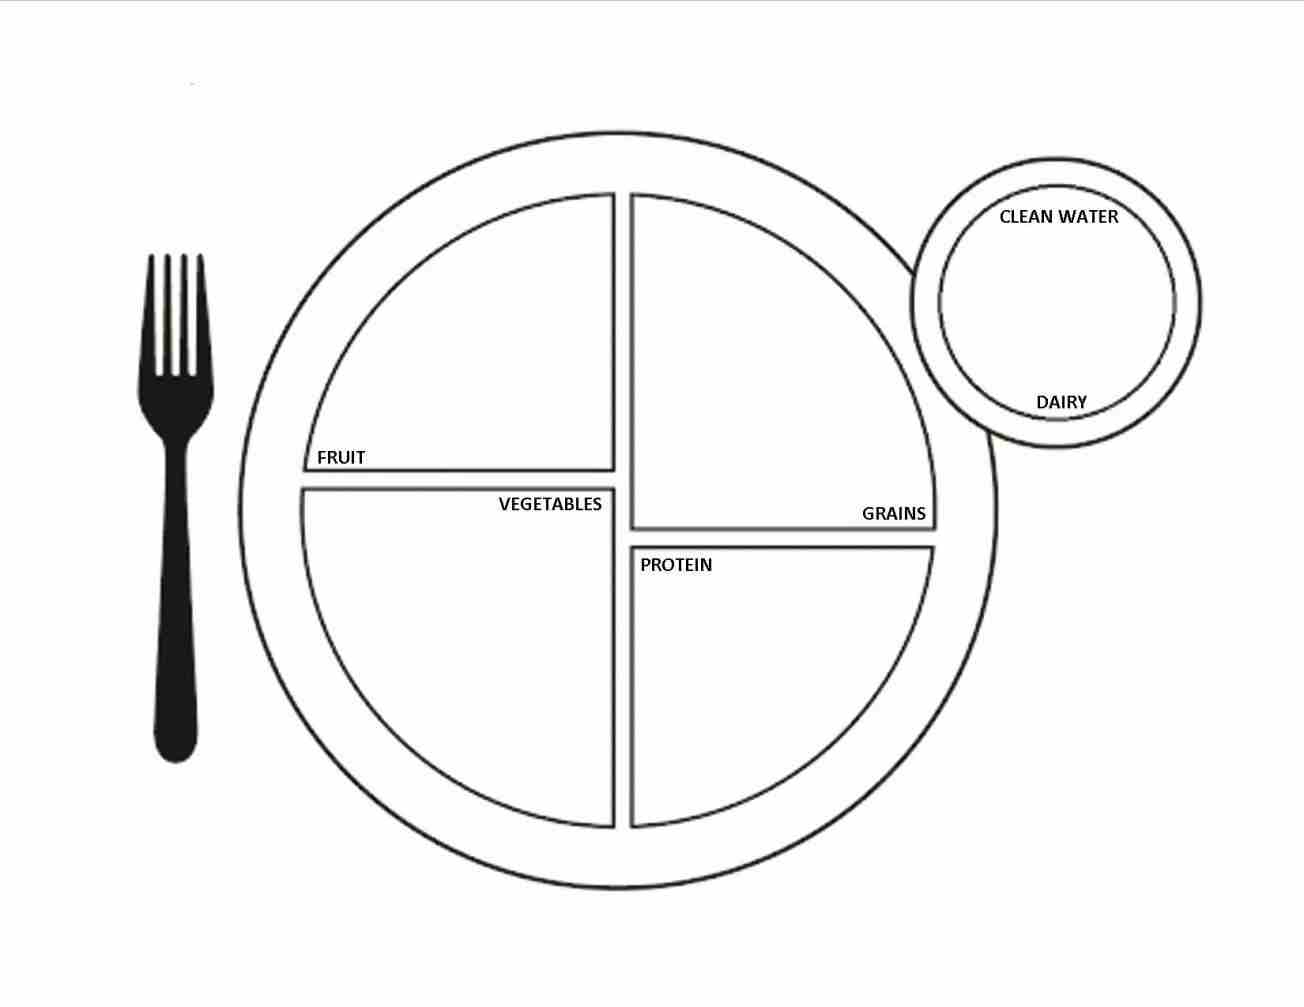 Food Plate Clipart illustration empty plate vegetables healthy.